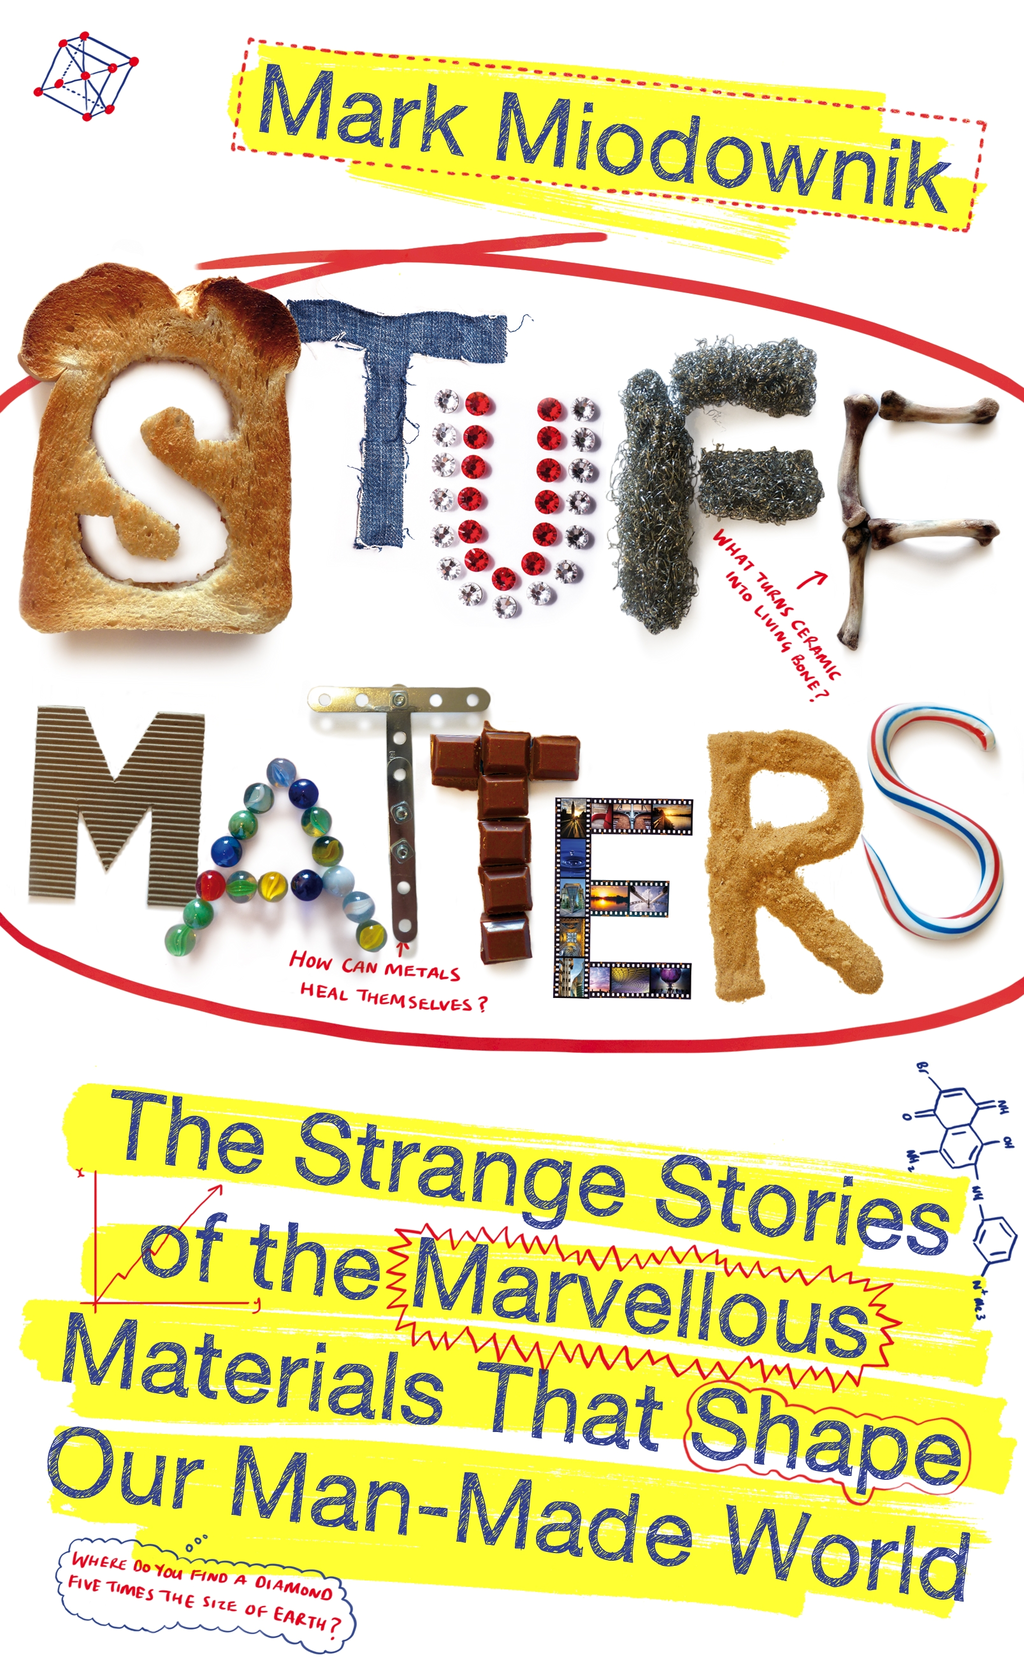 Stuff Matters The Strange Stories of the Marvellous Materials that Shape Our Man-made World